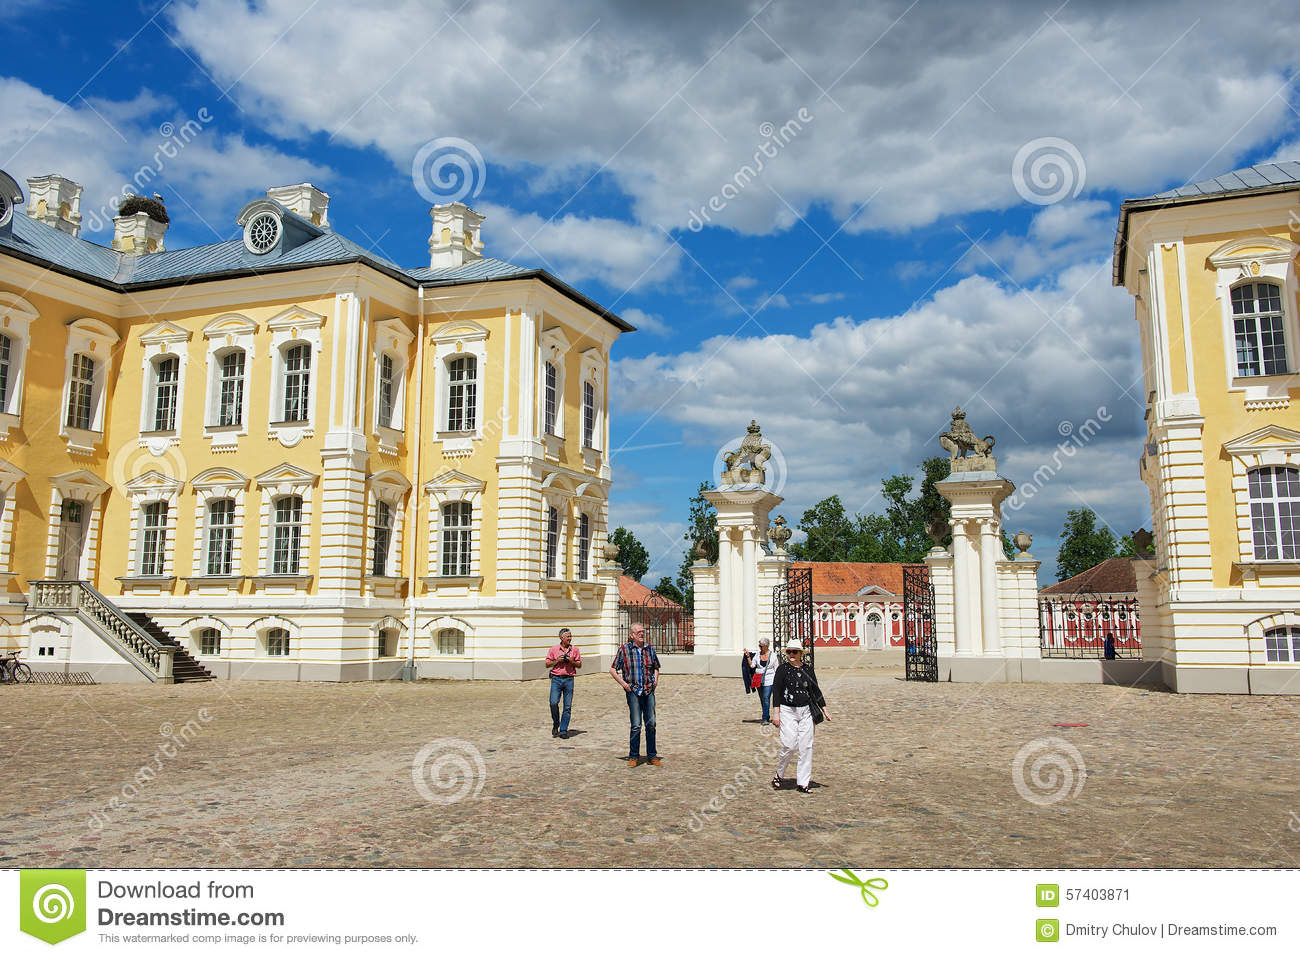 People explore Rundale palace in Pilsrundale, Latvia.